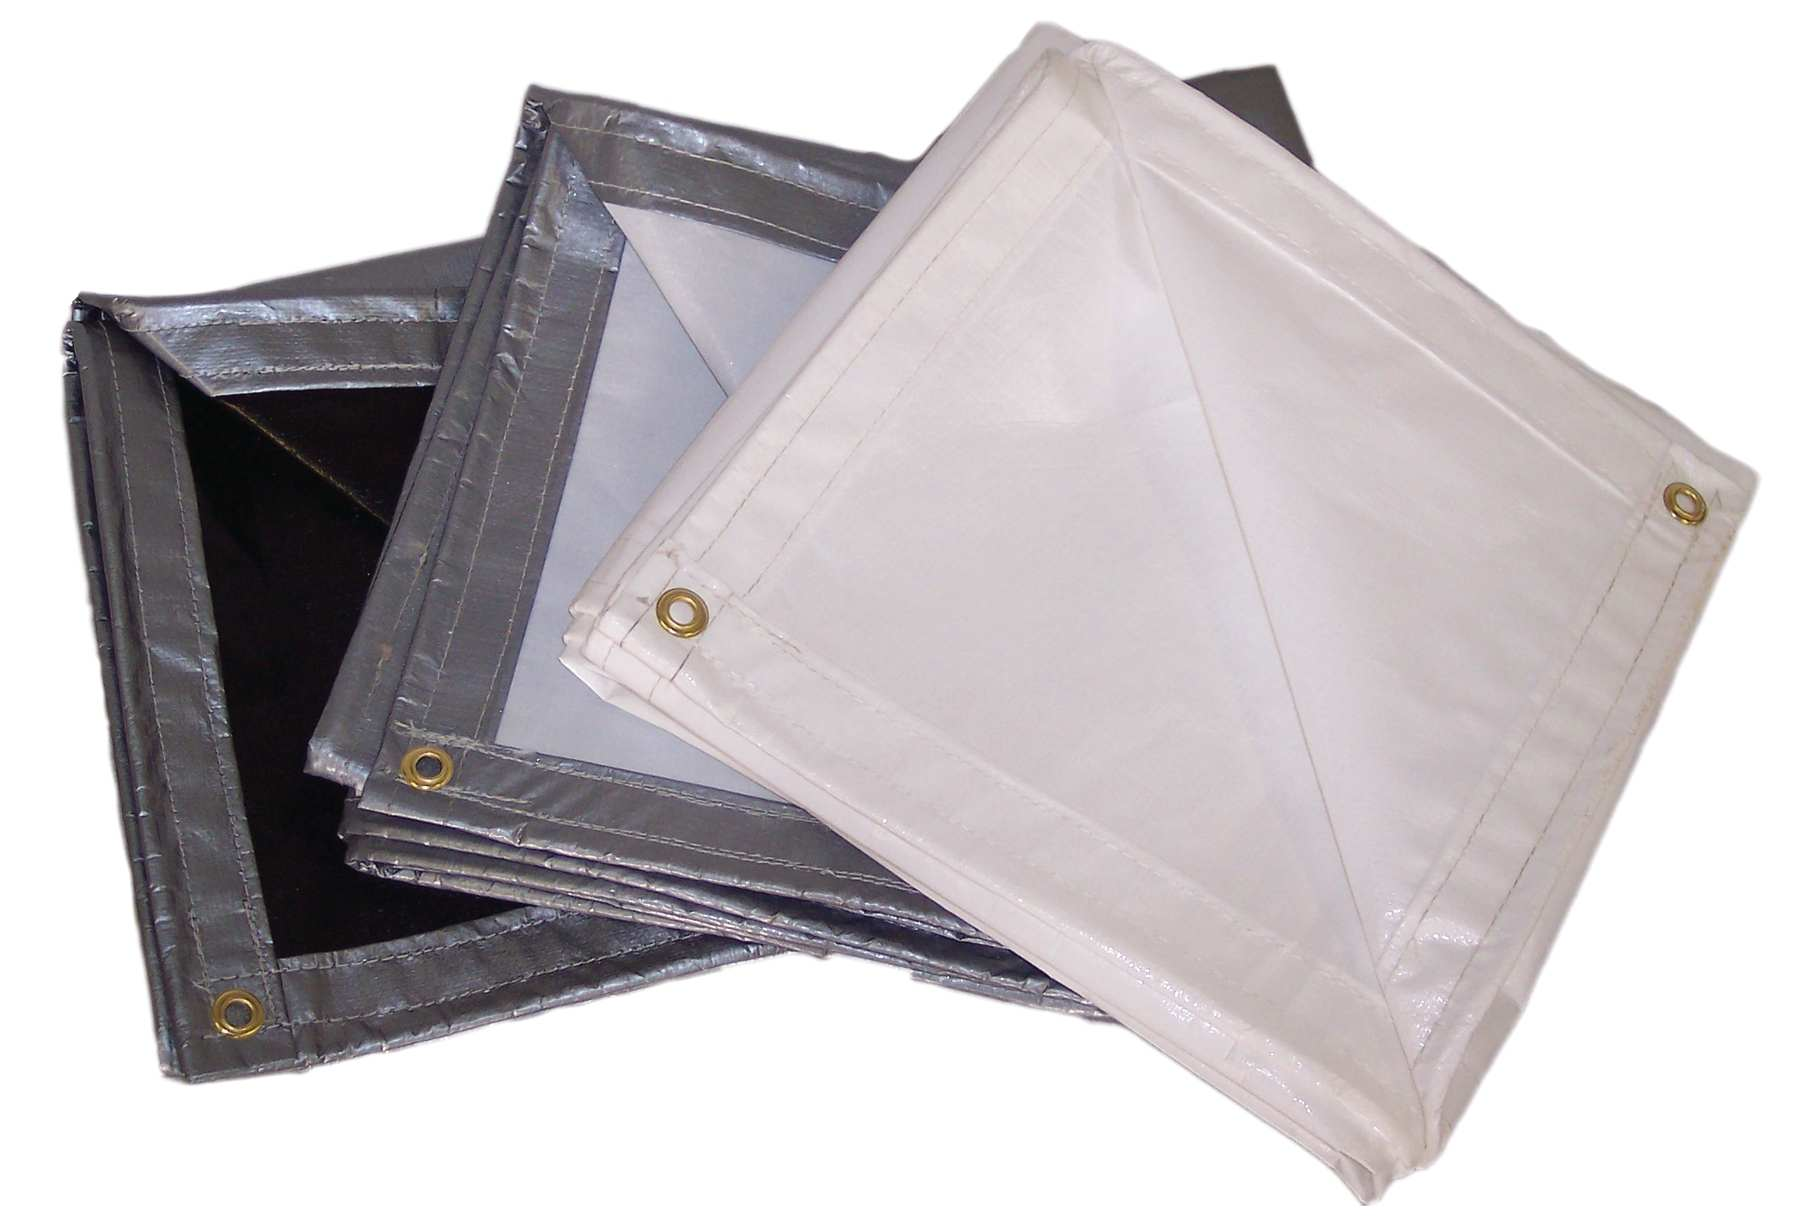 Heavy Duty Reinforced Polyethylene Tarps – 12 mil., 7 oz./sq. Yd.; Size (ft.) 10 x 12